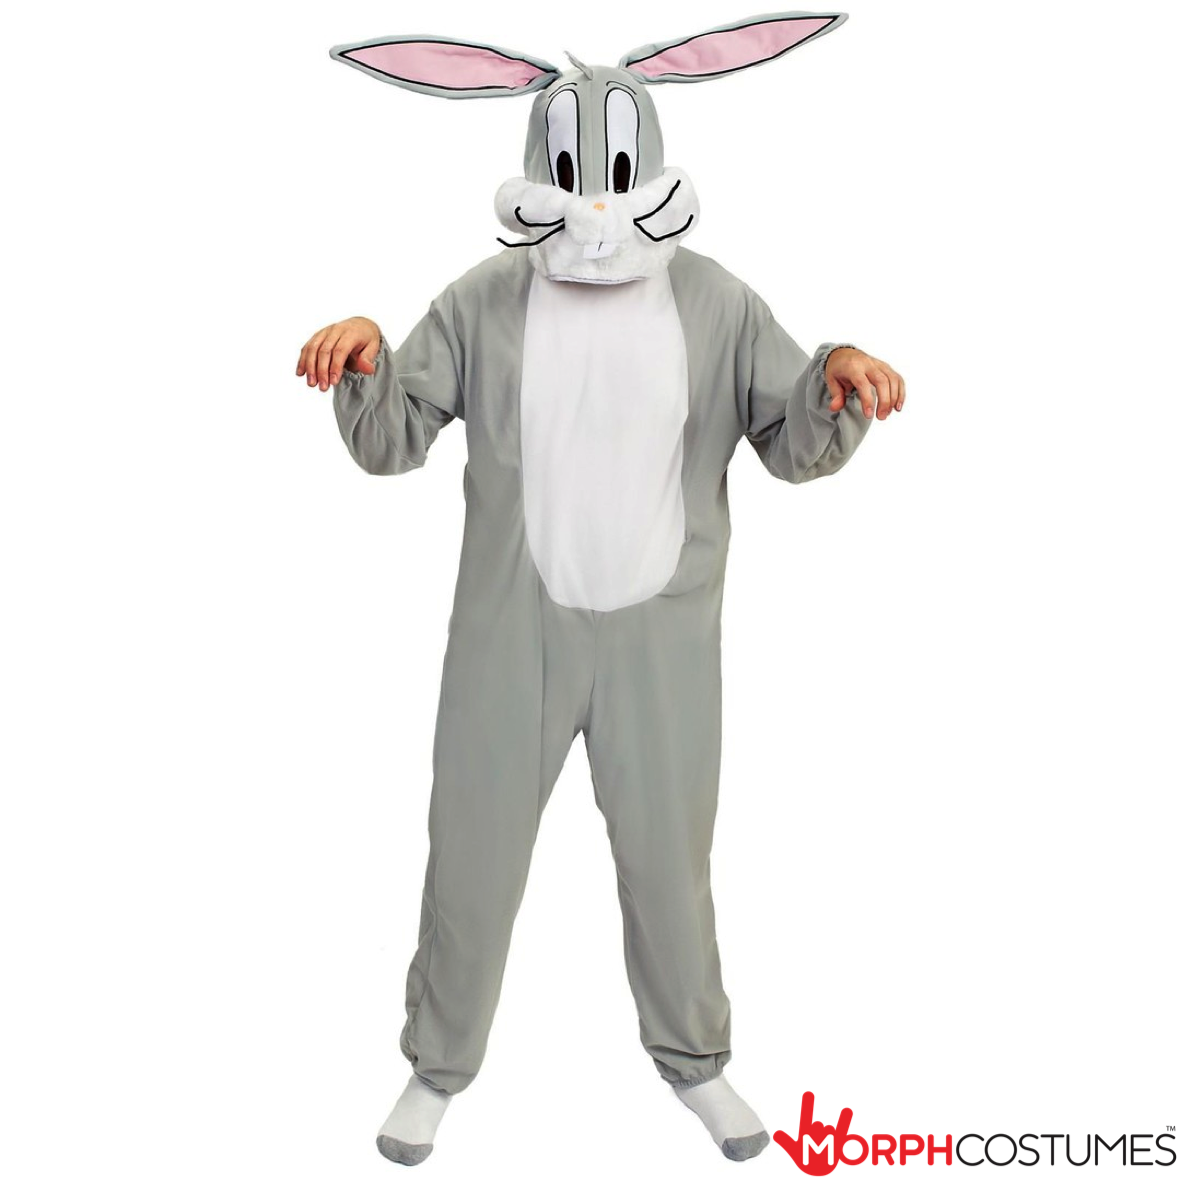 Animal Fancy Dress Inspiration Ahh What S Up Doc Nothing S Up Everything S Great Because You Re The Star Of The Bugs Bunny Costume Bugs Bunny Bunny Costume